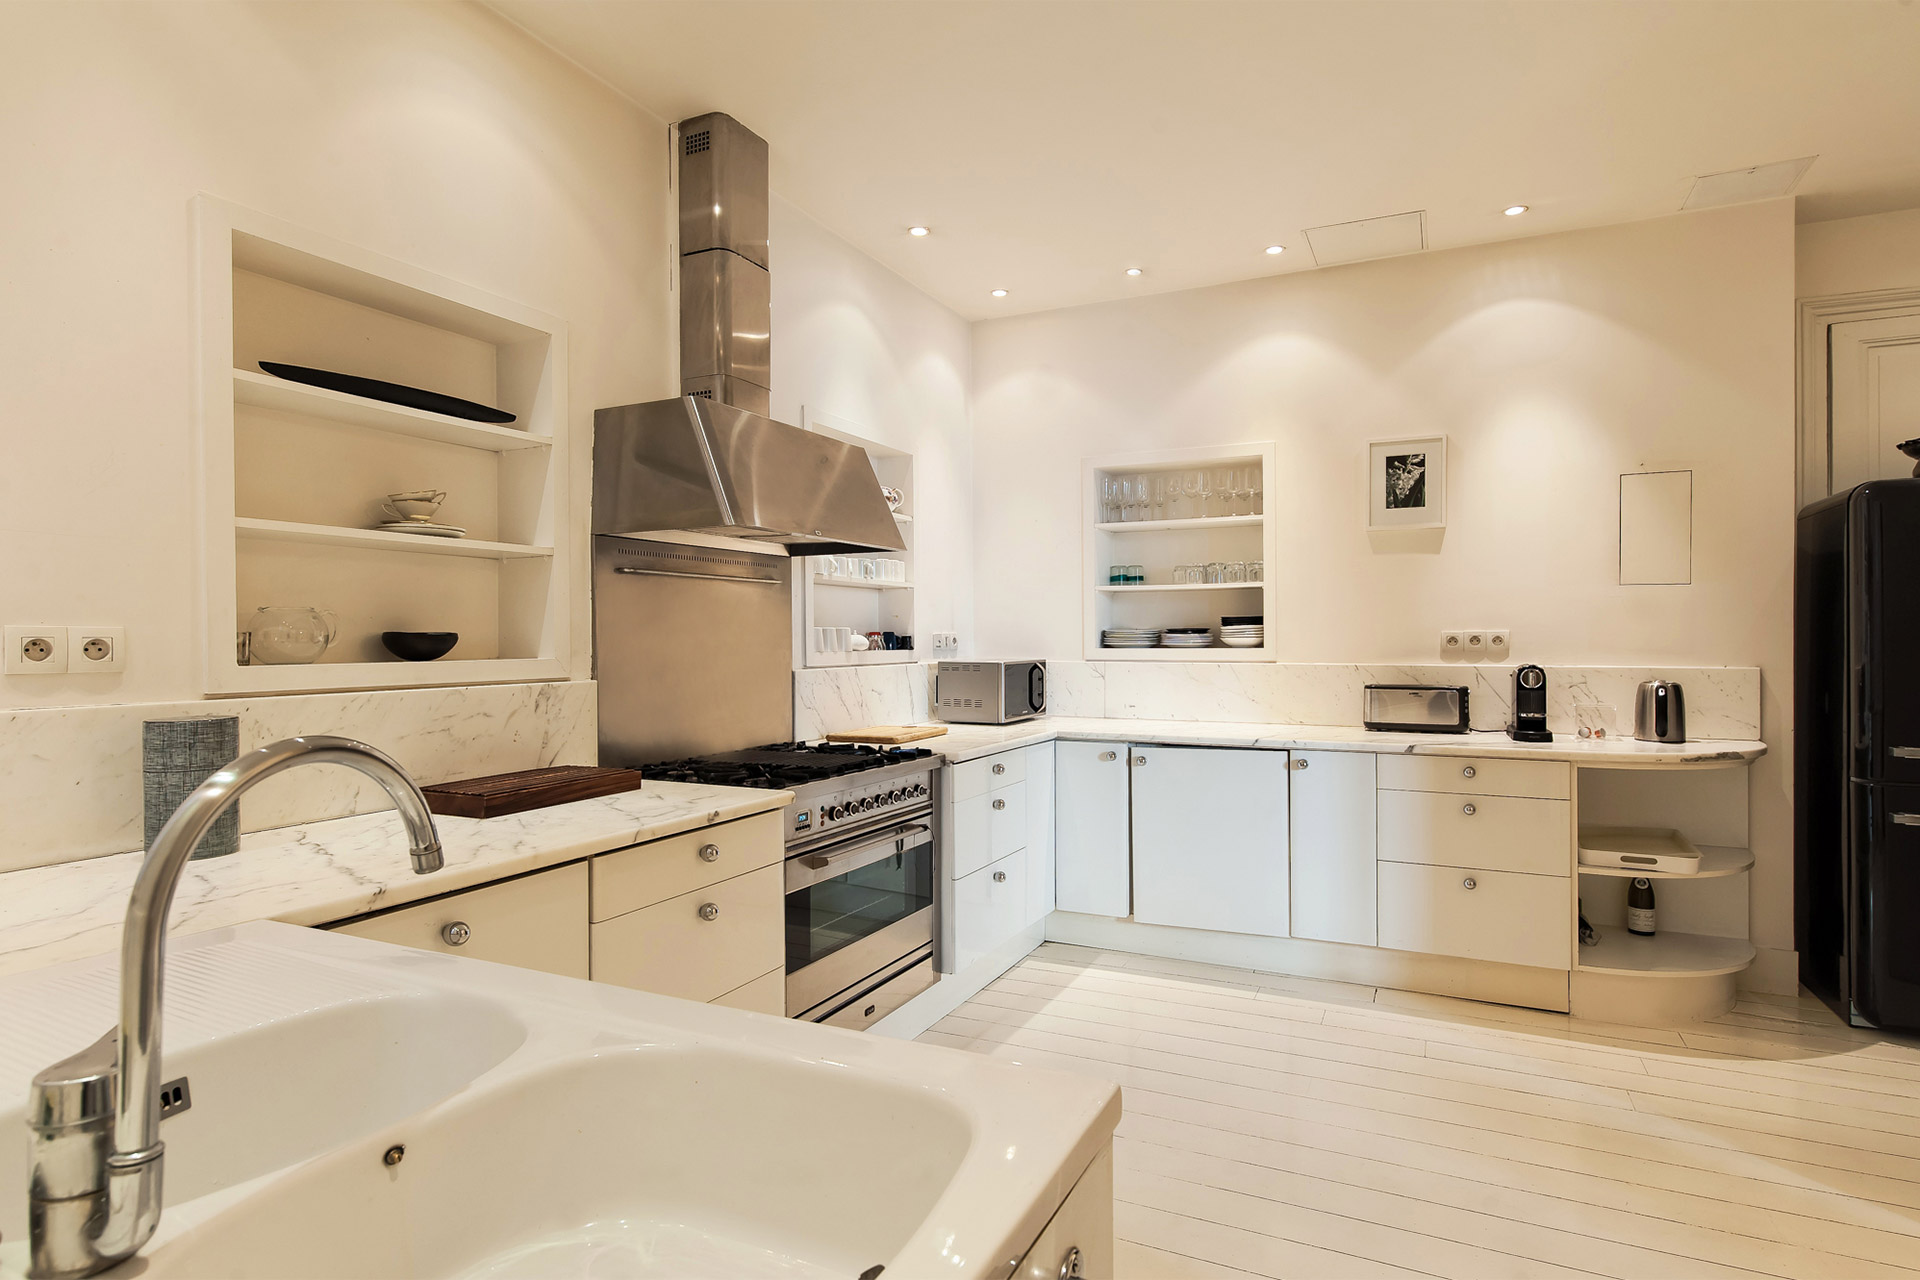 Large kitchen in the Cavailles Paris rental with modern appliances plus everything you need to cook at home